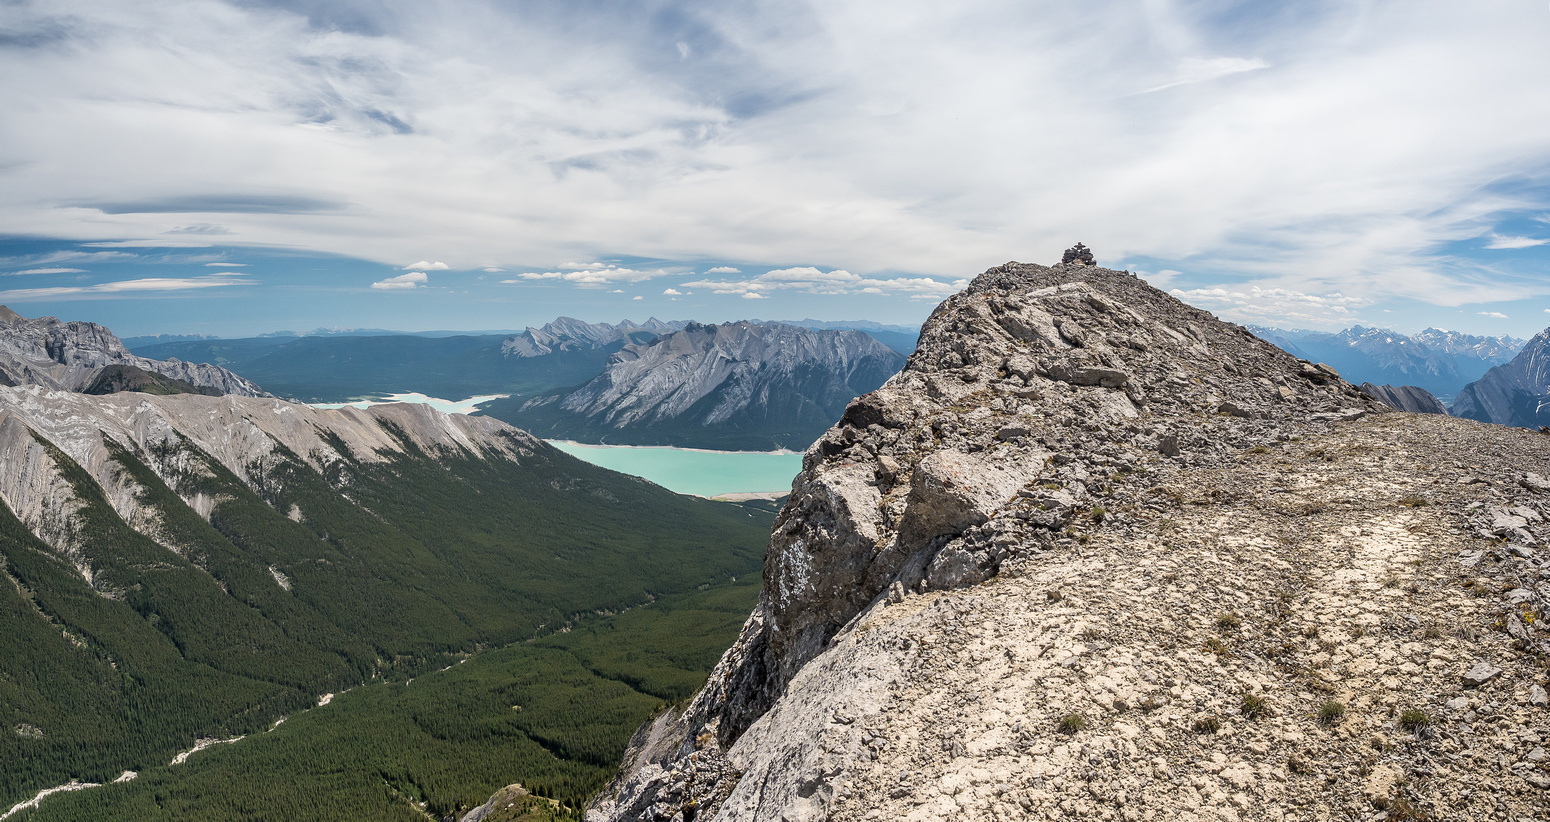 The summit of Stelfox with Whitegoat Creek at lower left and Mount Michener and Abraham Lake in the distance.